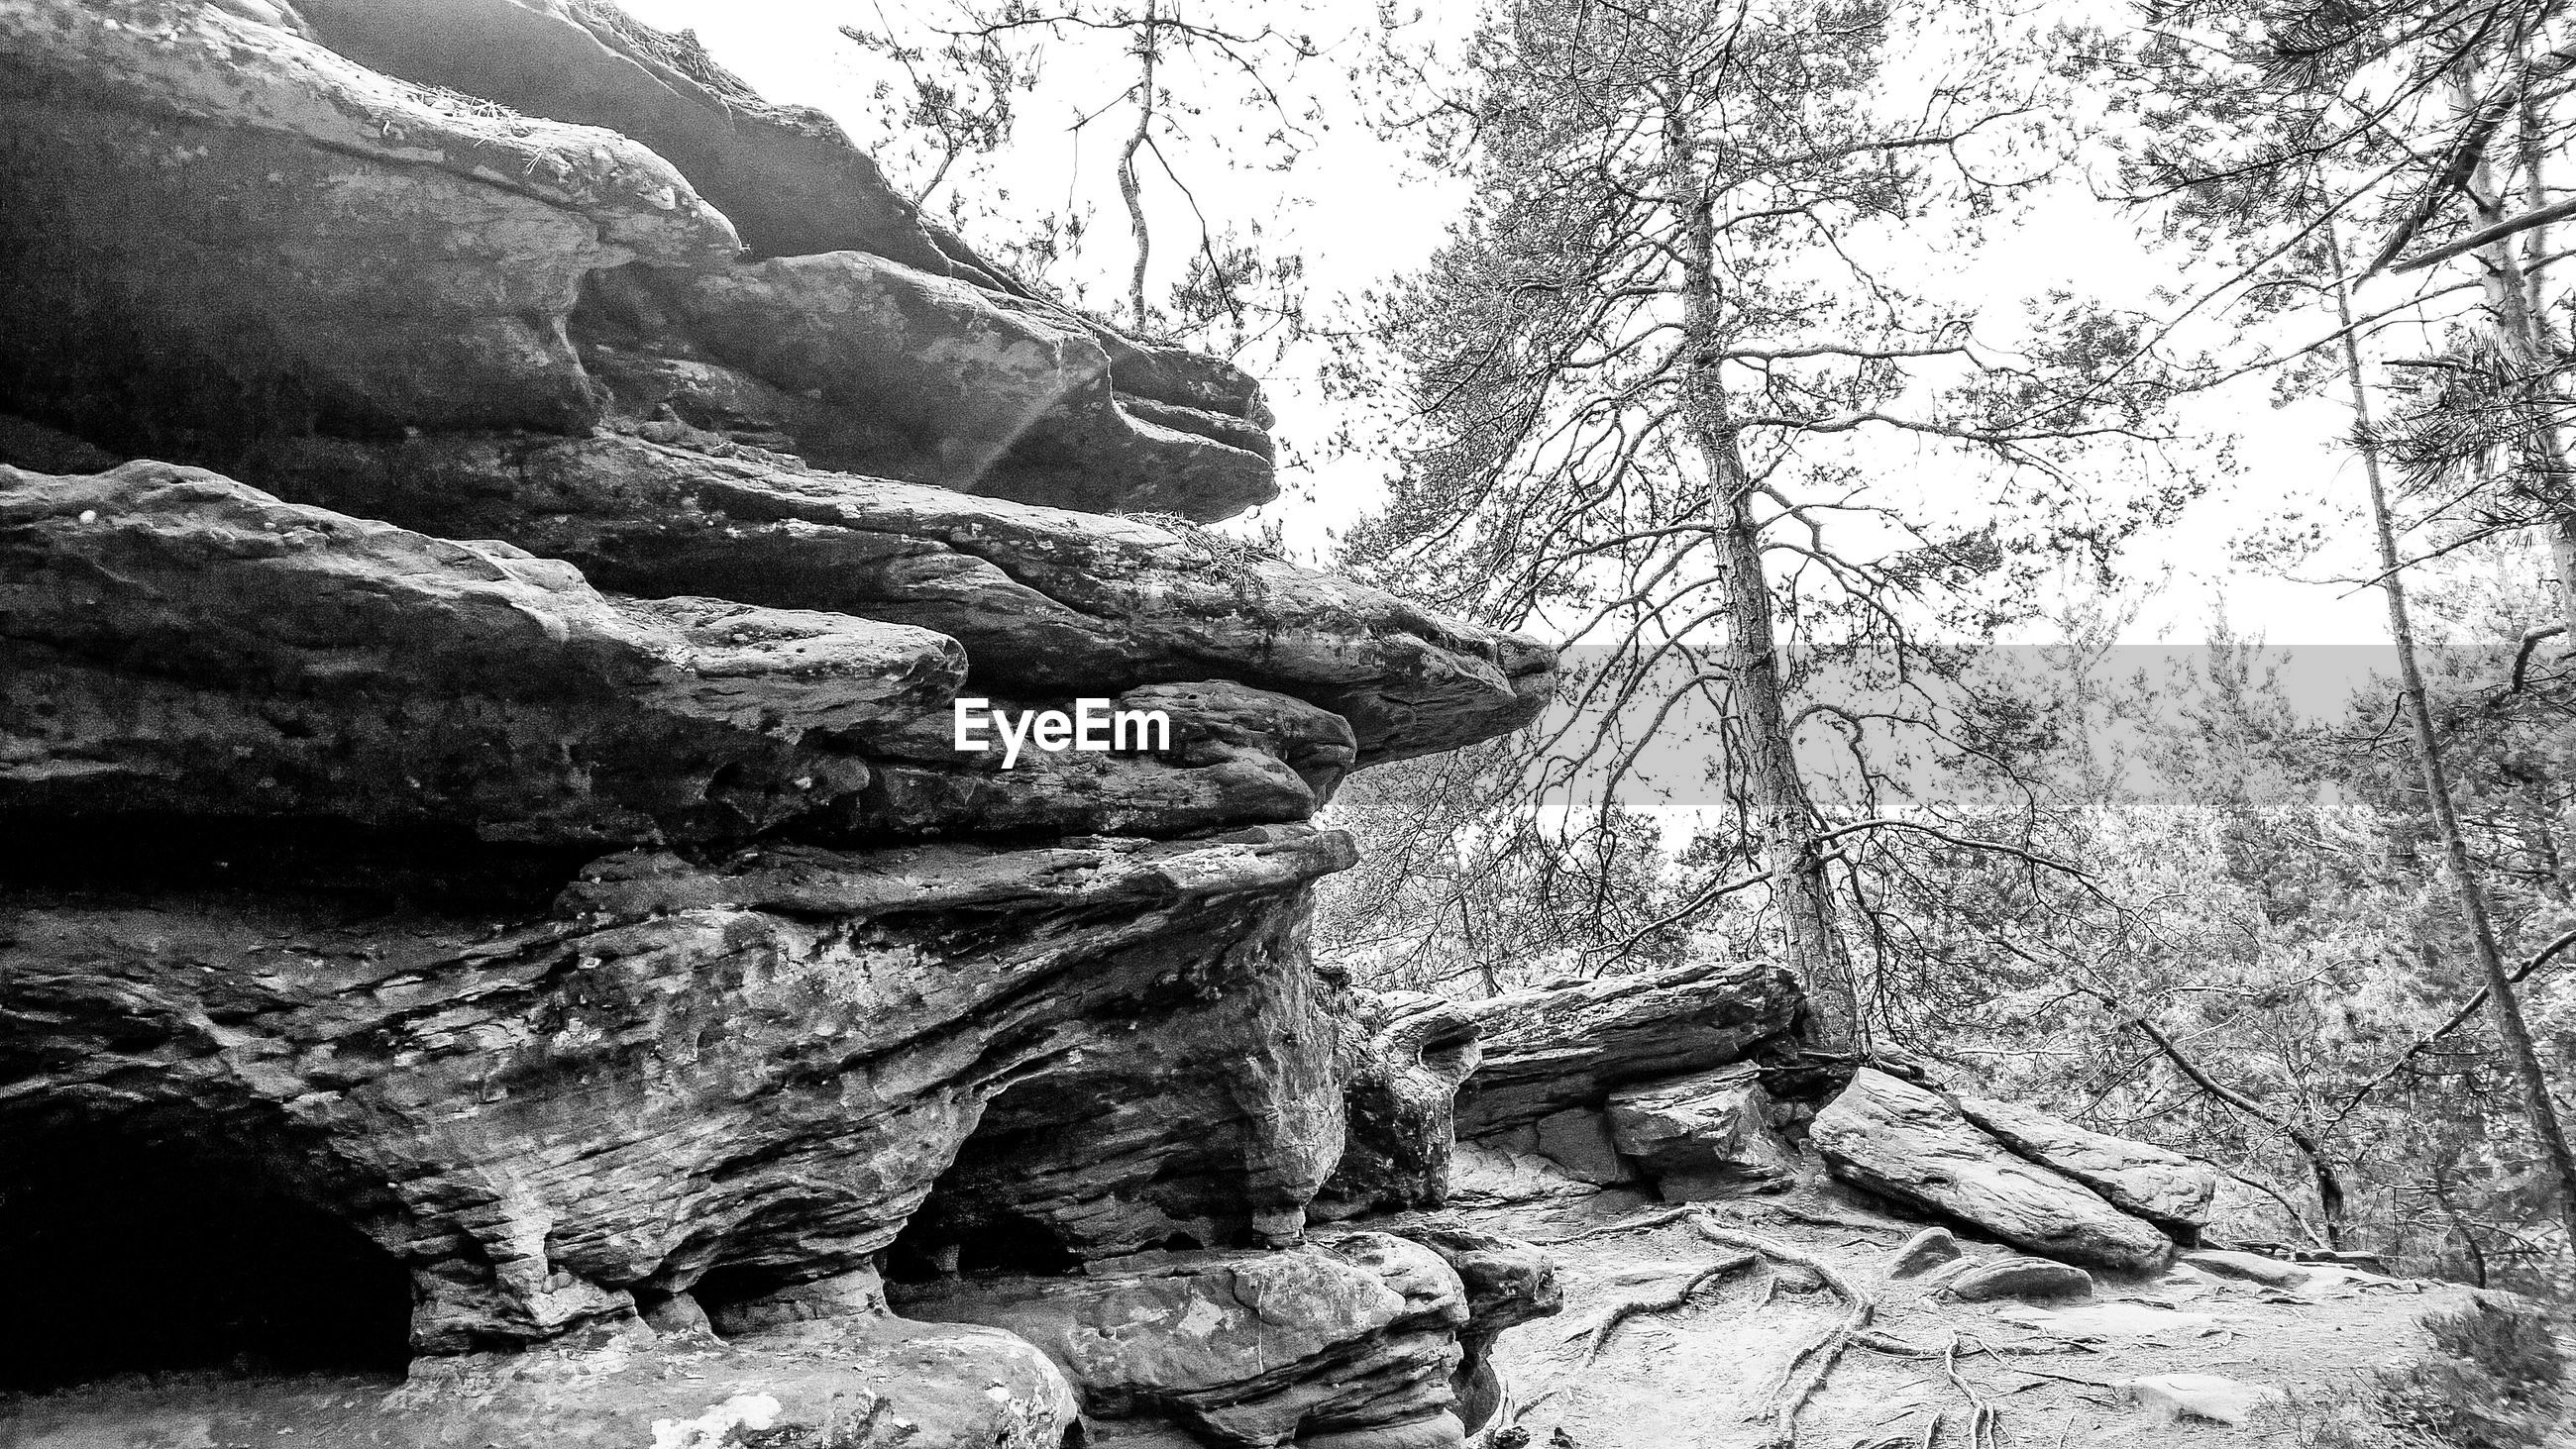 Rock formations by trees in forest